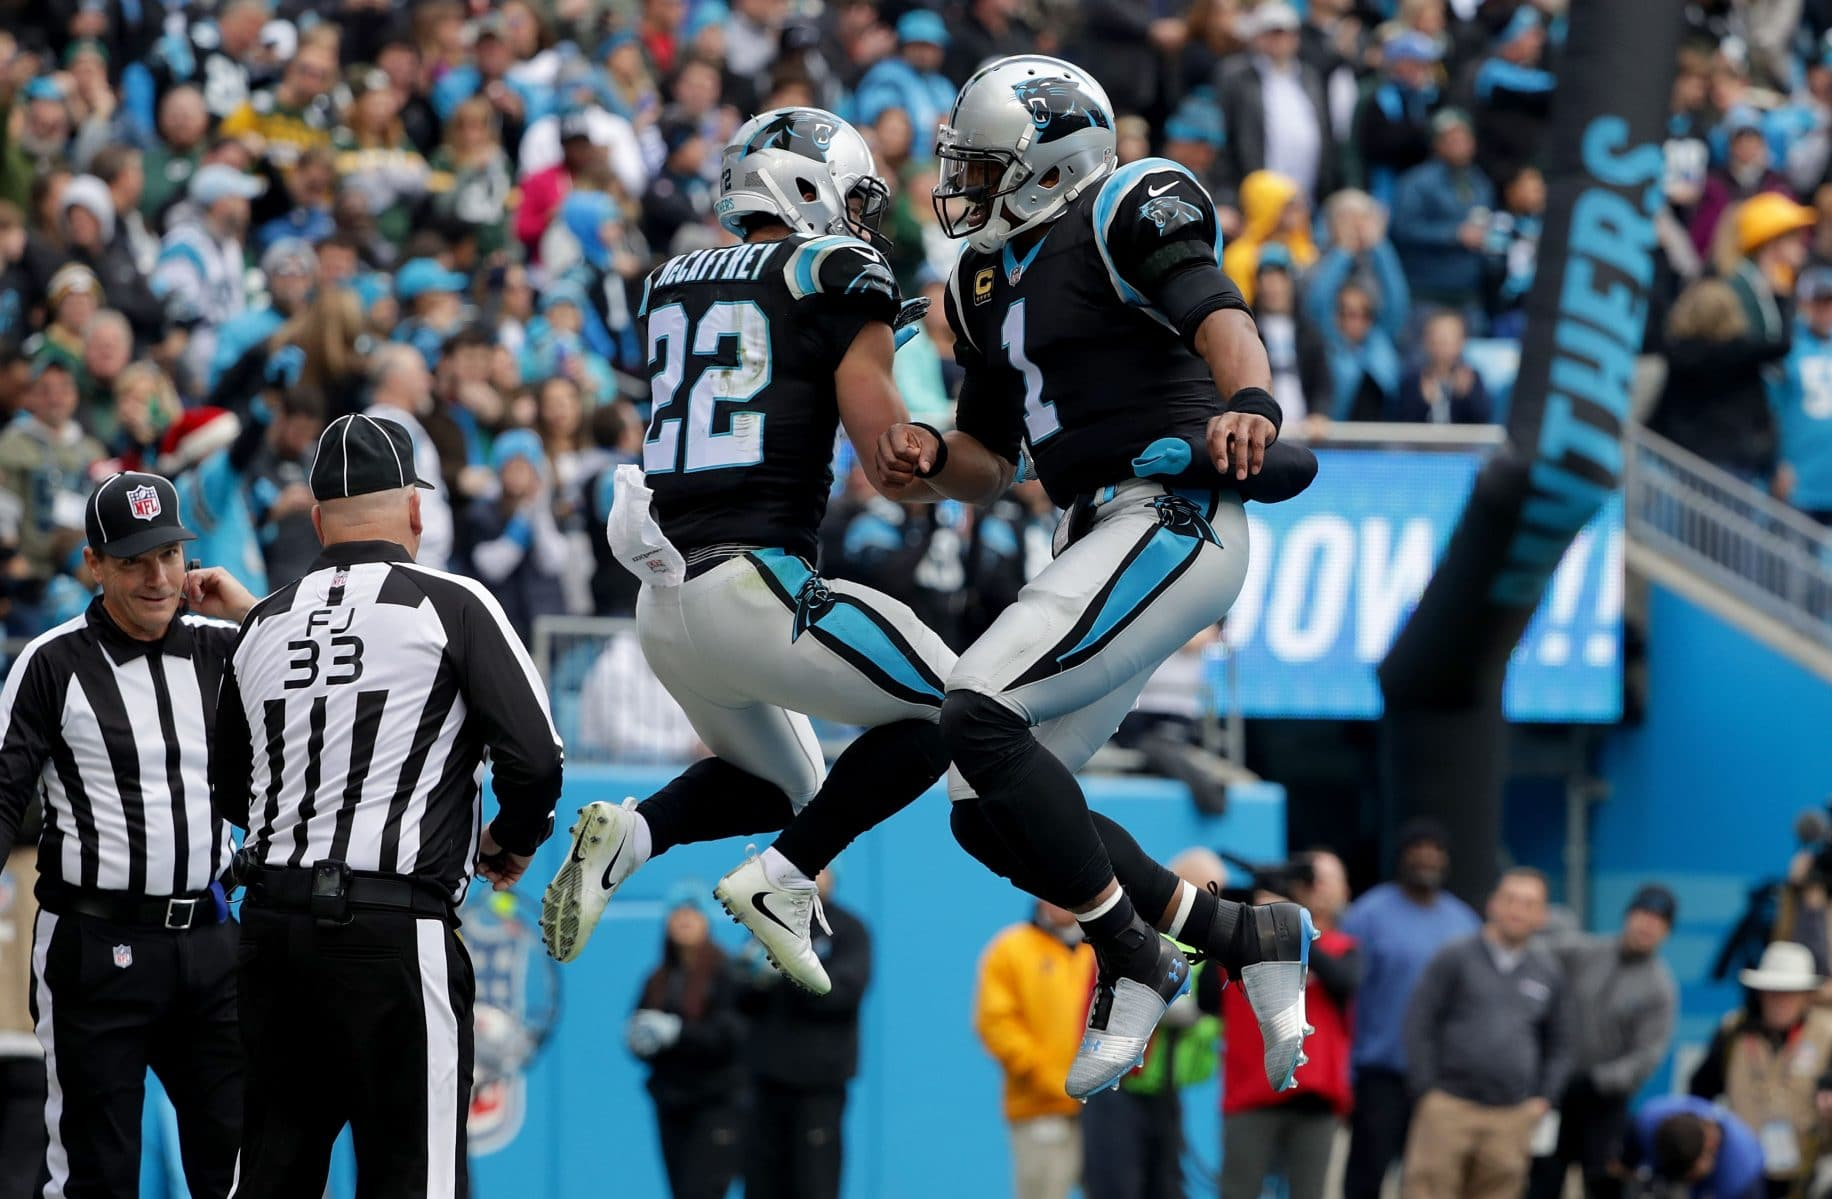 Cam Newton to Clay Matthews: You've been watching film, huh? (Video)